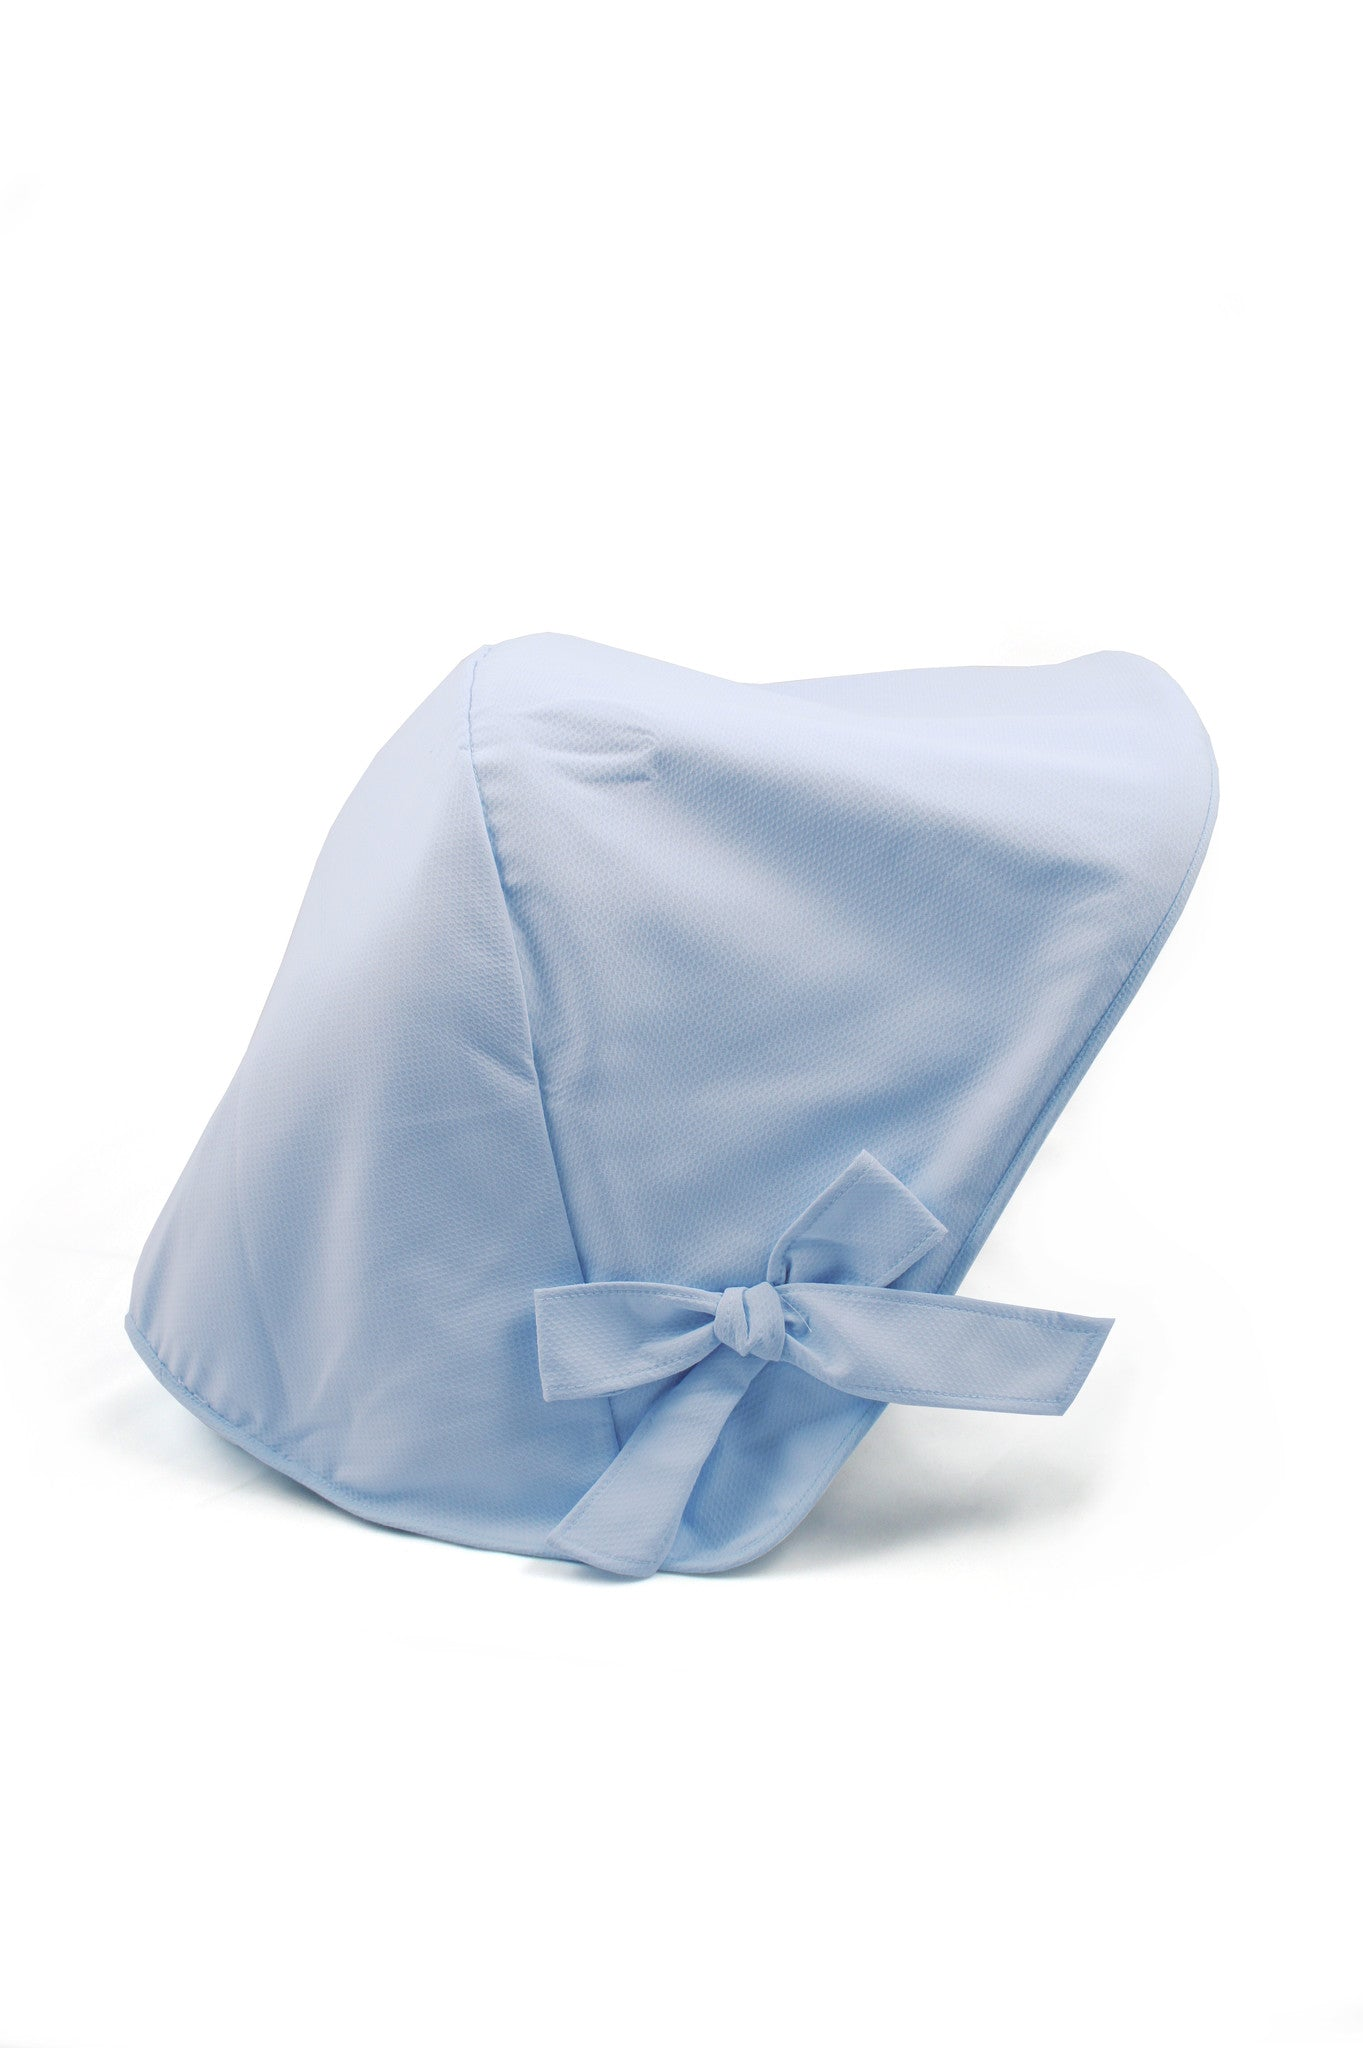 Cotton Candy hood/canopy ( compatible with bugaboo strollers )